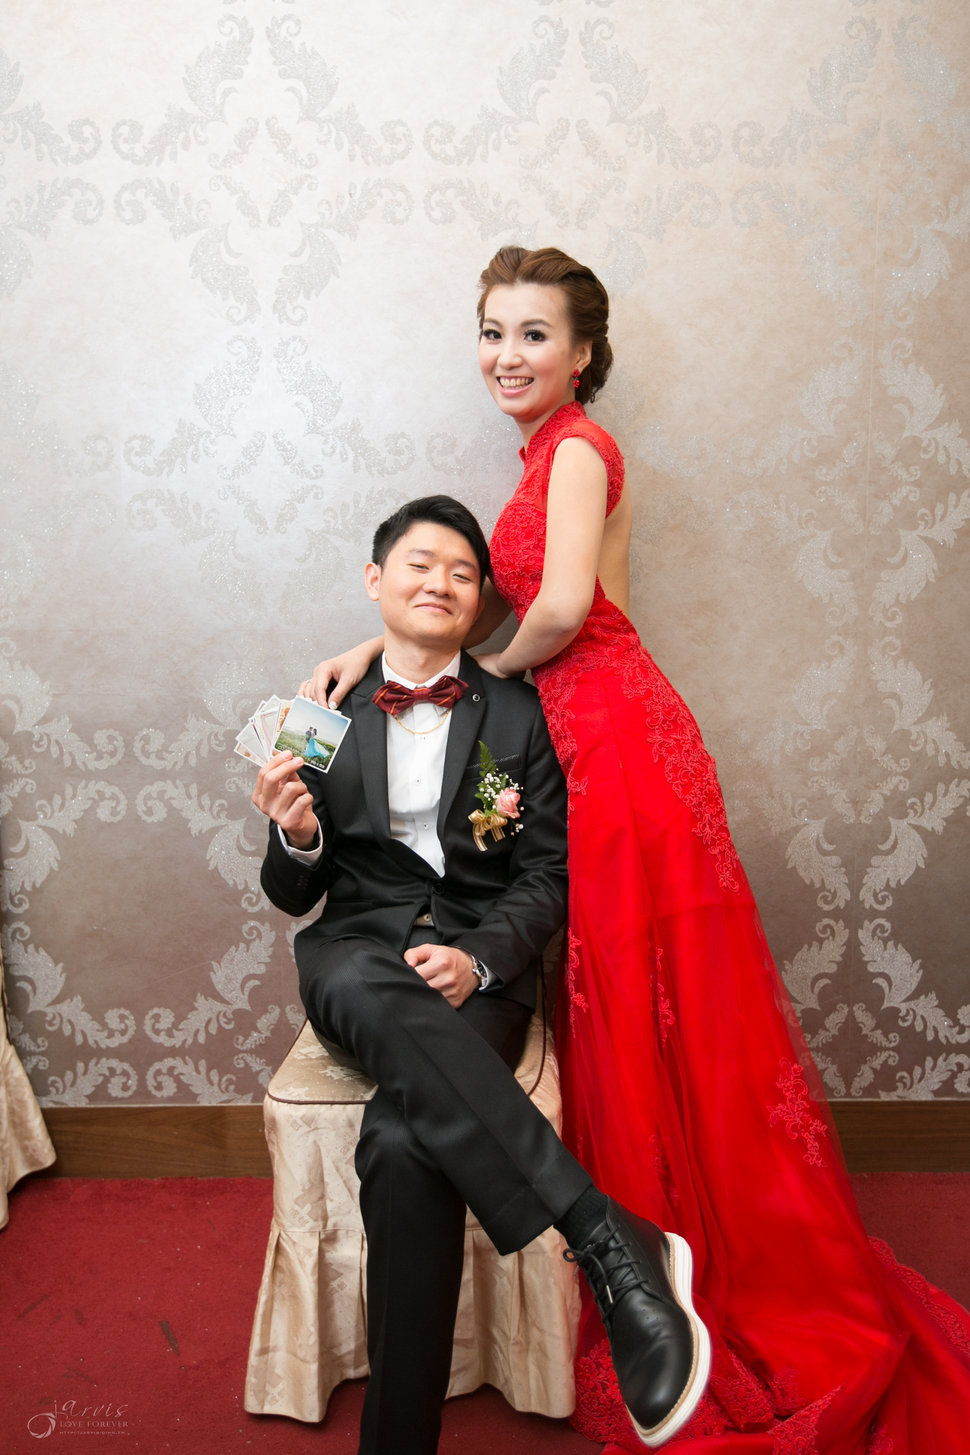 2D7A1865 - Jarvis Ding - 結婚吧